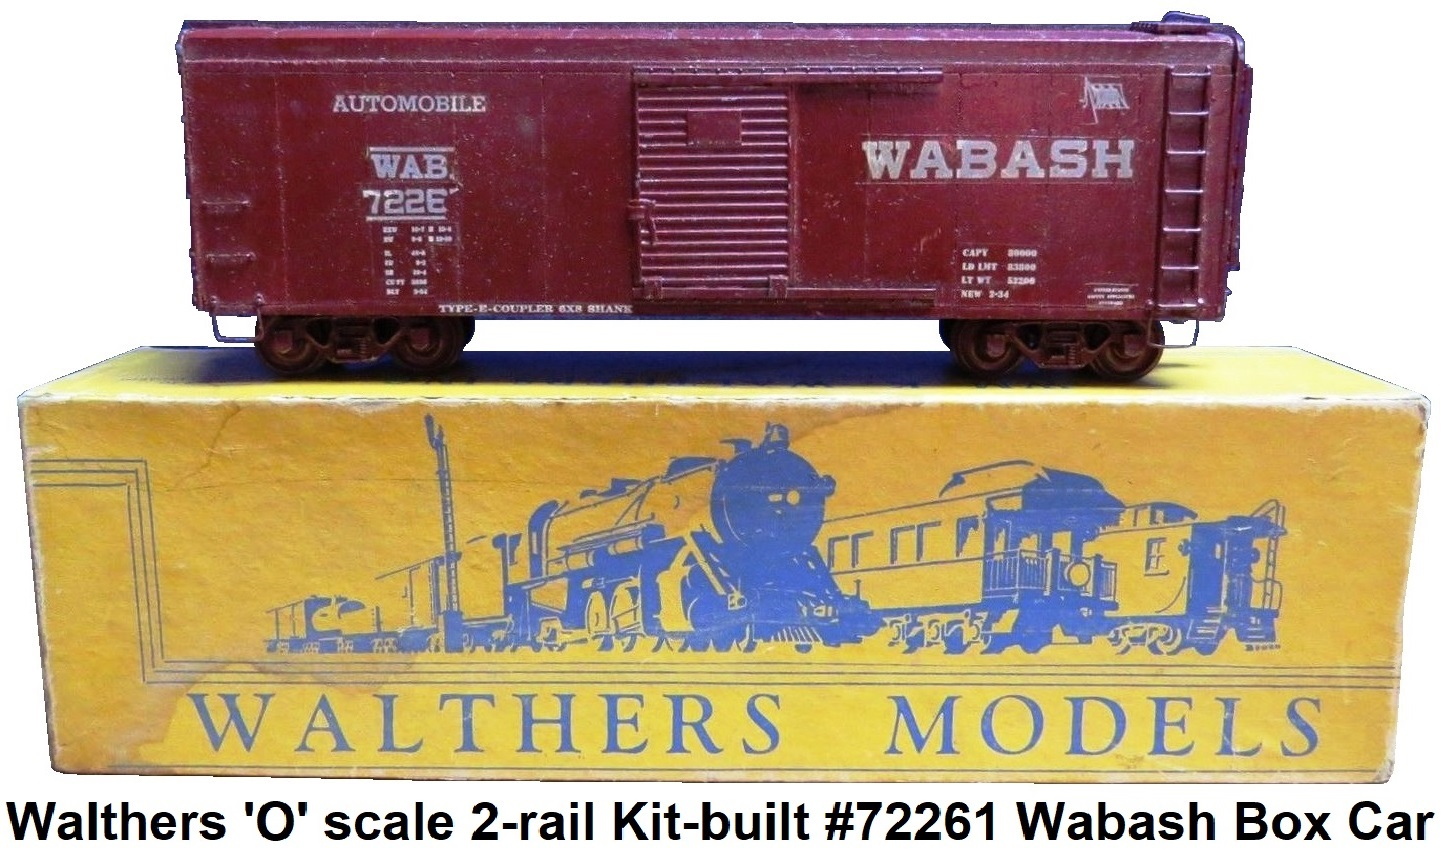 Walthers 'O' scale 2-rail Kit-built #72261 Wabash Box Car